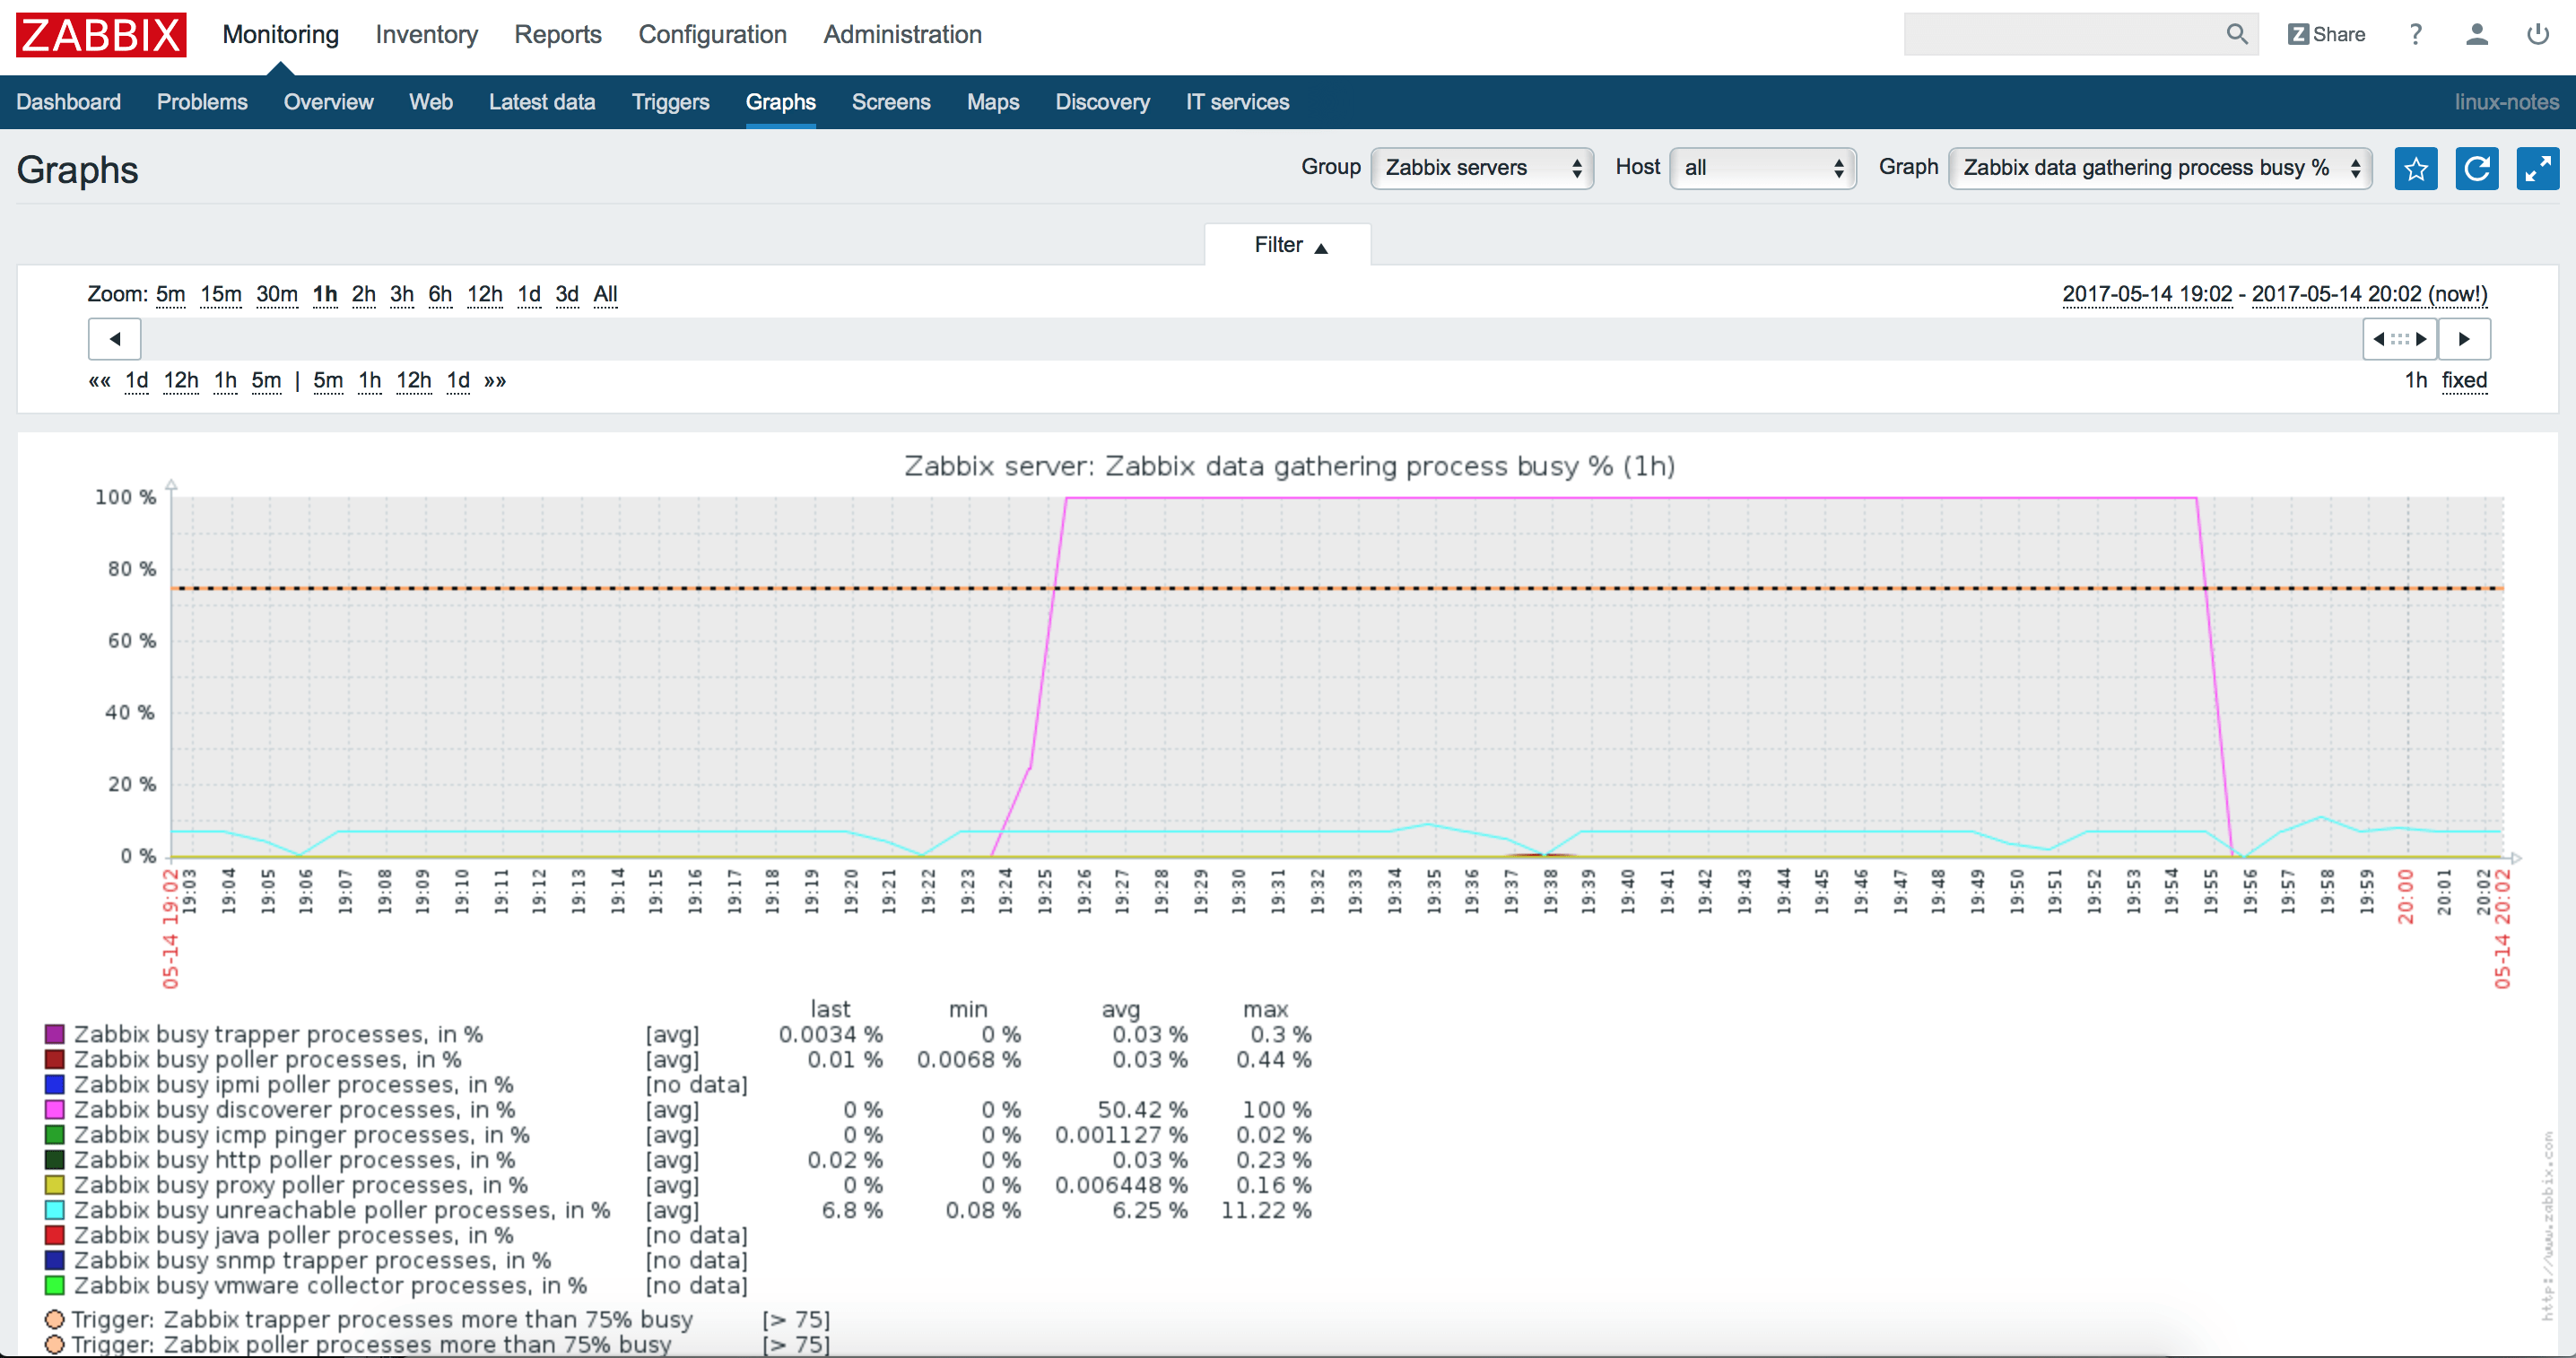 Zabbix discoverer processes more than 75% busy